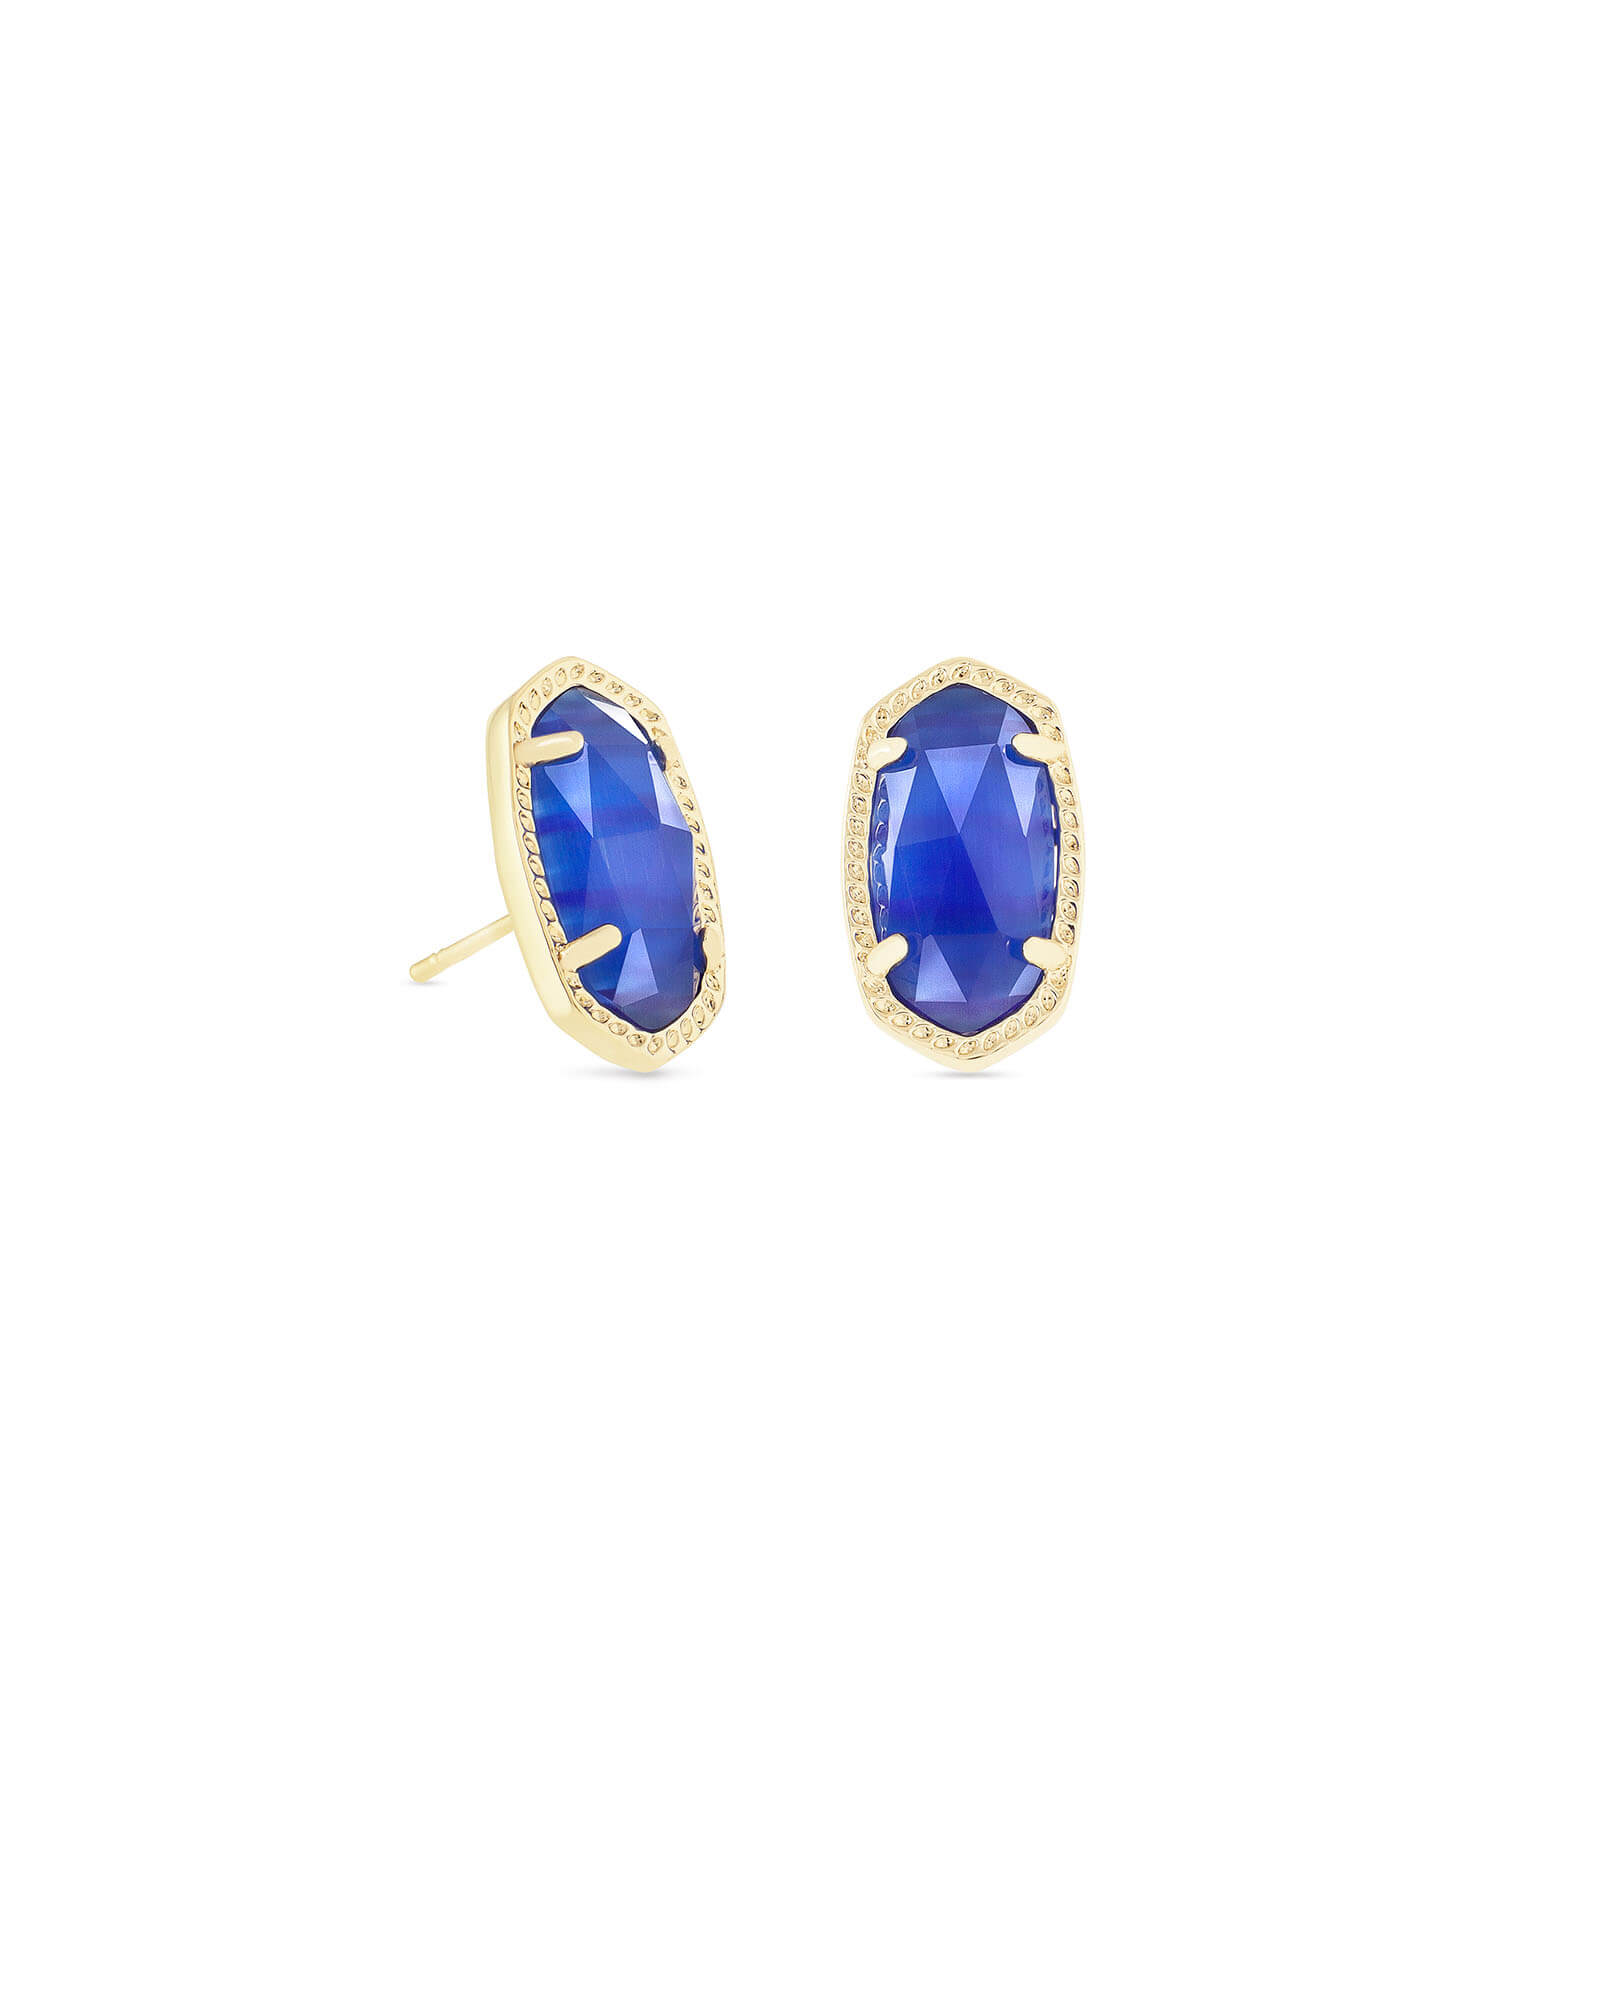 Ellie Gold Stud Earrings in Cobalt Cats Eye